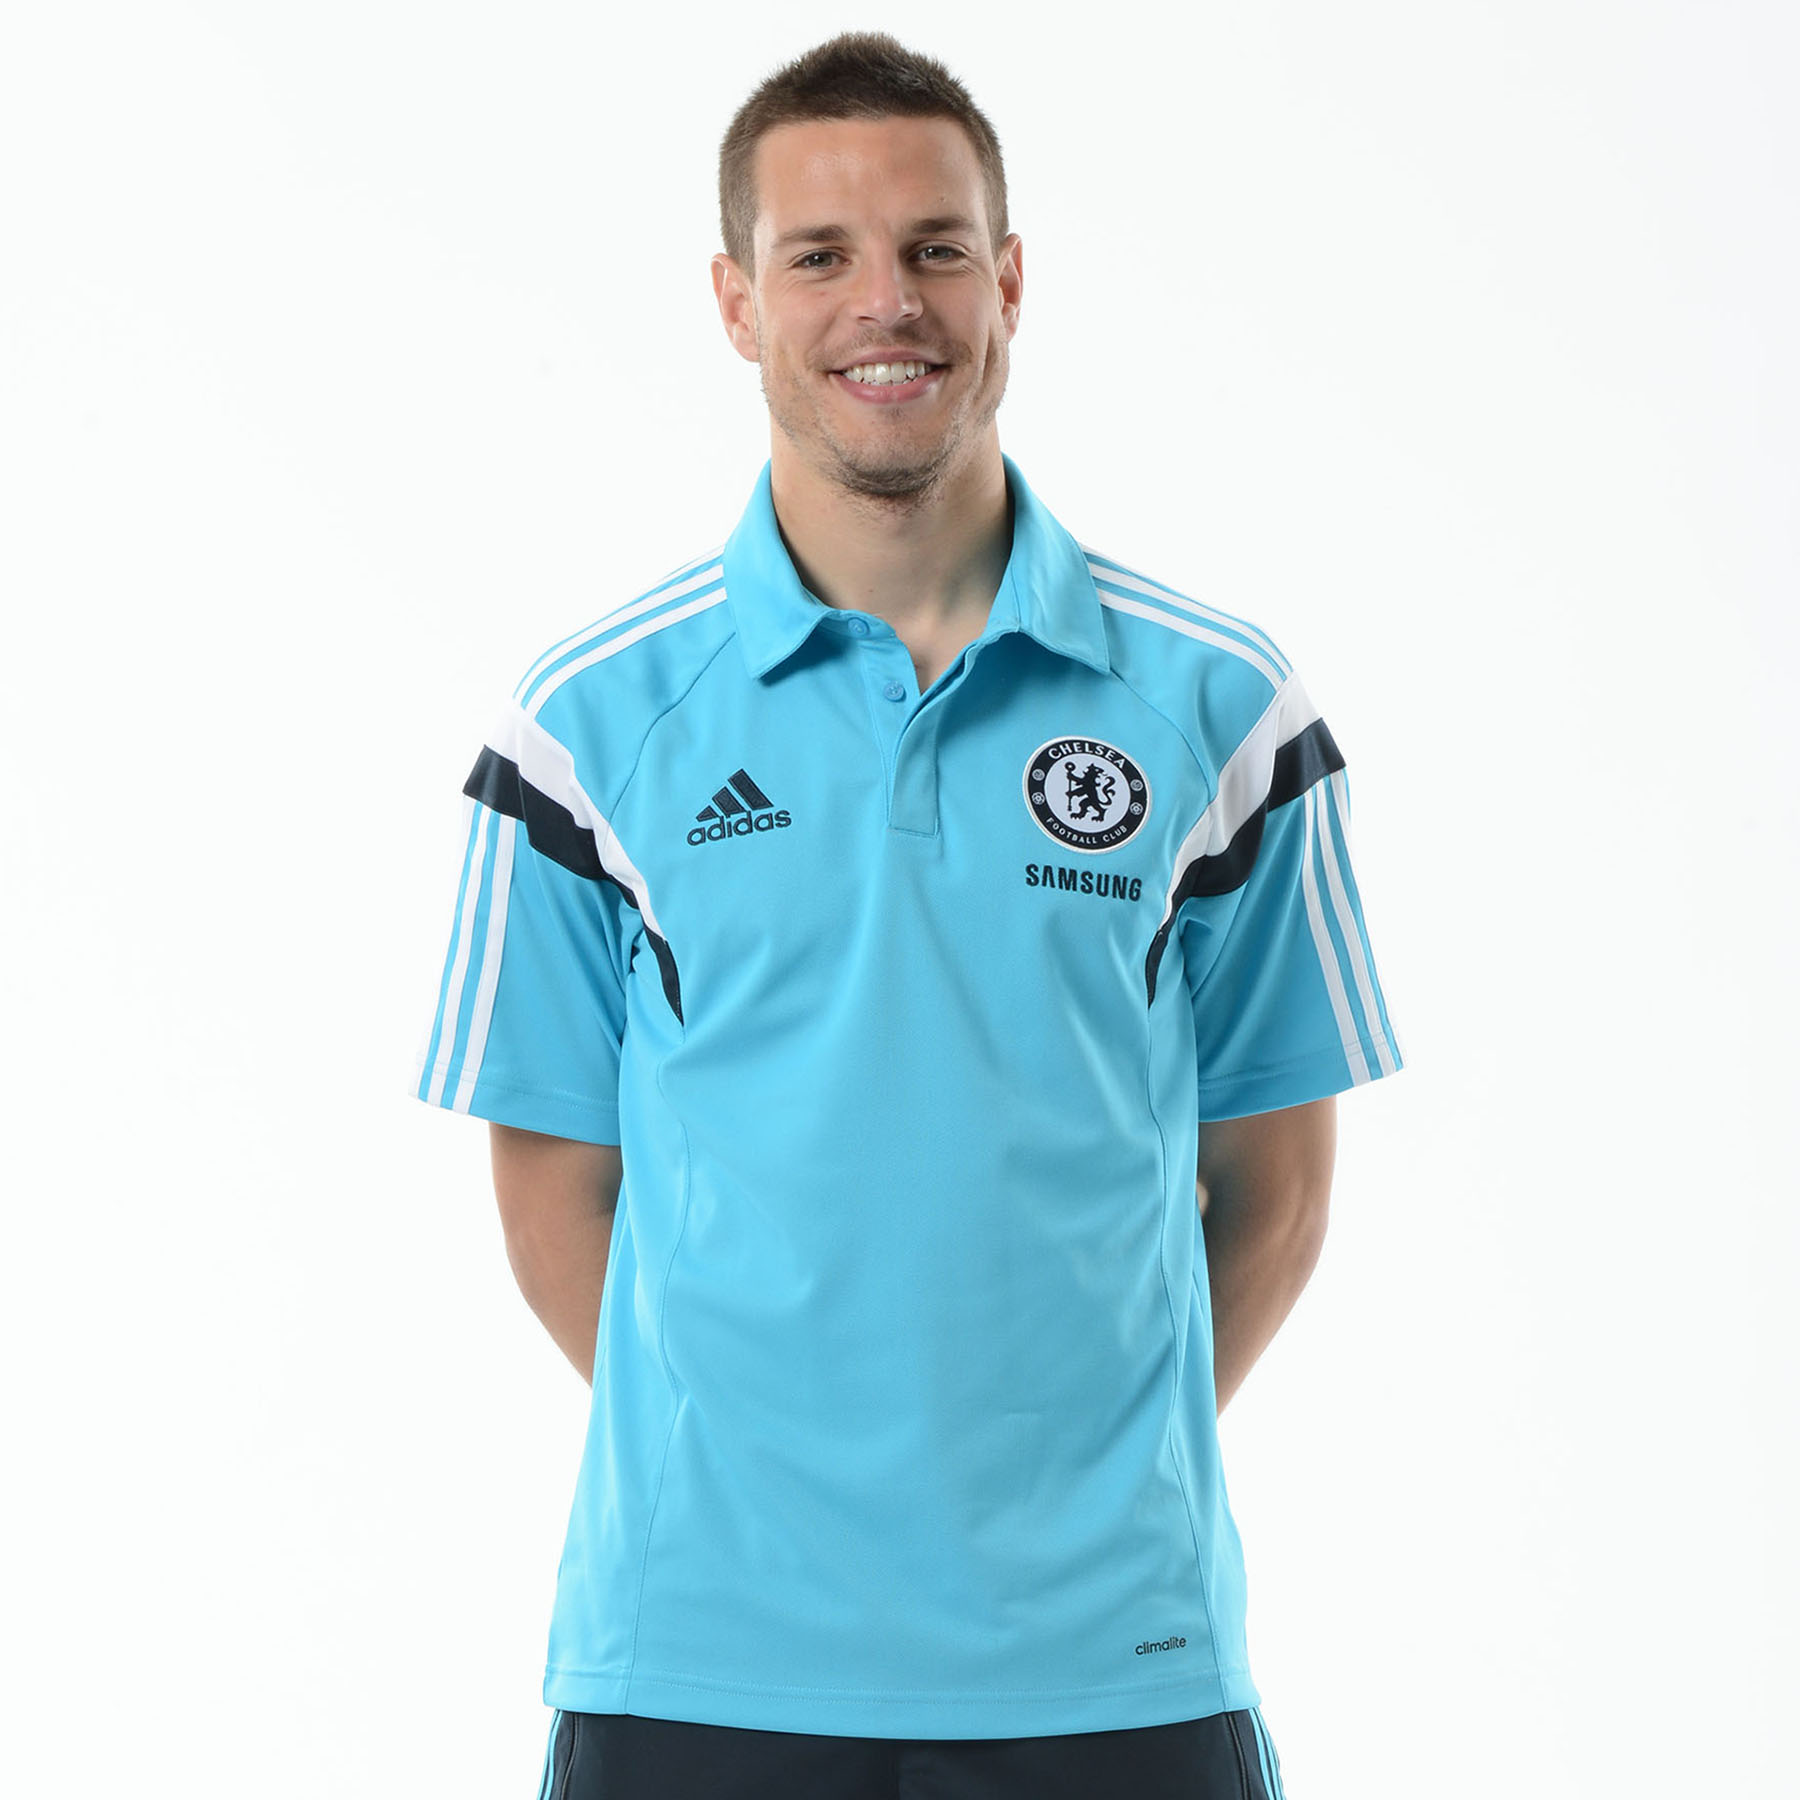 Chelsea Training Polo Blue   Enjoy a casual look casual with this blue Chelsea Training Polo. Made from soft, lightweight fabric, you can enjoy superior moisture management when you're out training in this adidas top.   Styled with a Chelsea club crest lion badge, adidas performance logo and stripes and a stylish buttoned collar, you can wear this Chelsea training top for club pride, comfort and style.   Benefits of this Chelsea Training Polo •Superior moisture management so you can stay cool and dry when the game heats up •Chelsea club crest on the chest •adidas three stripe logo